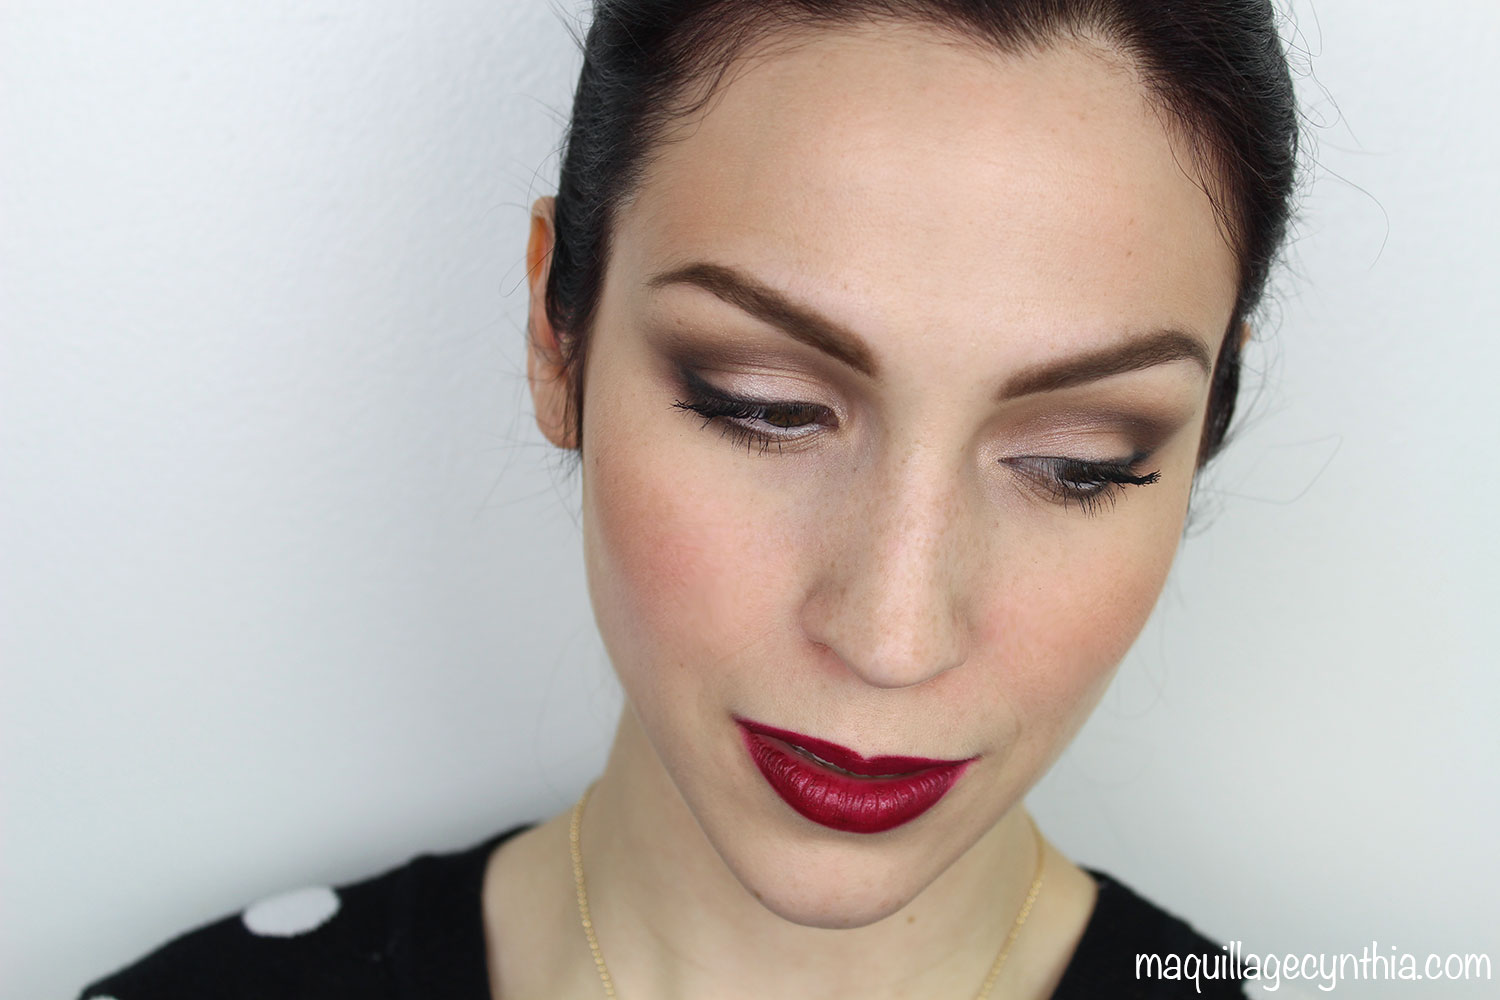 Inspirations Maquillage | Maquillage Cynthia | Maquillage